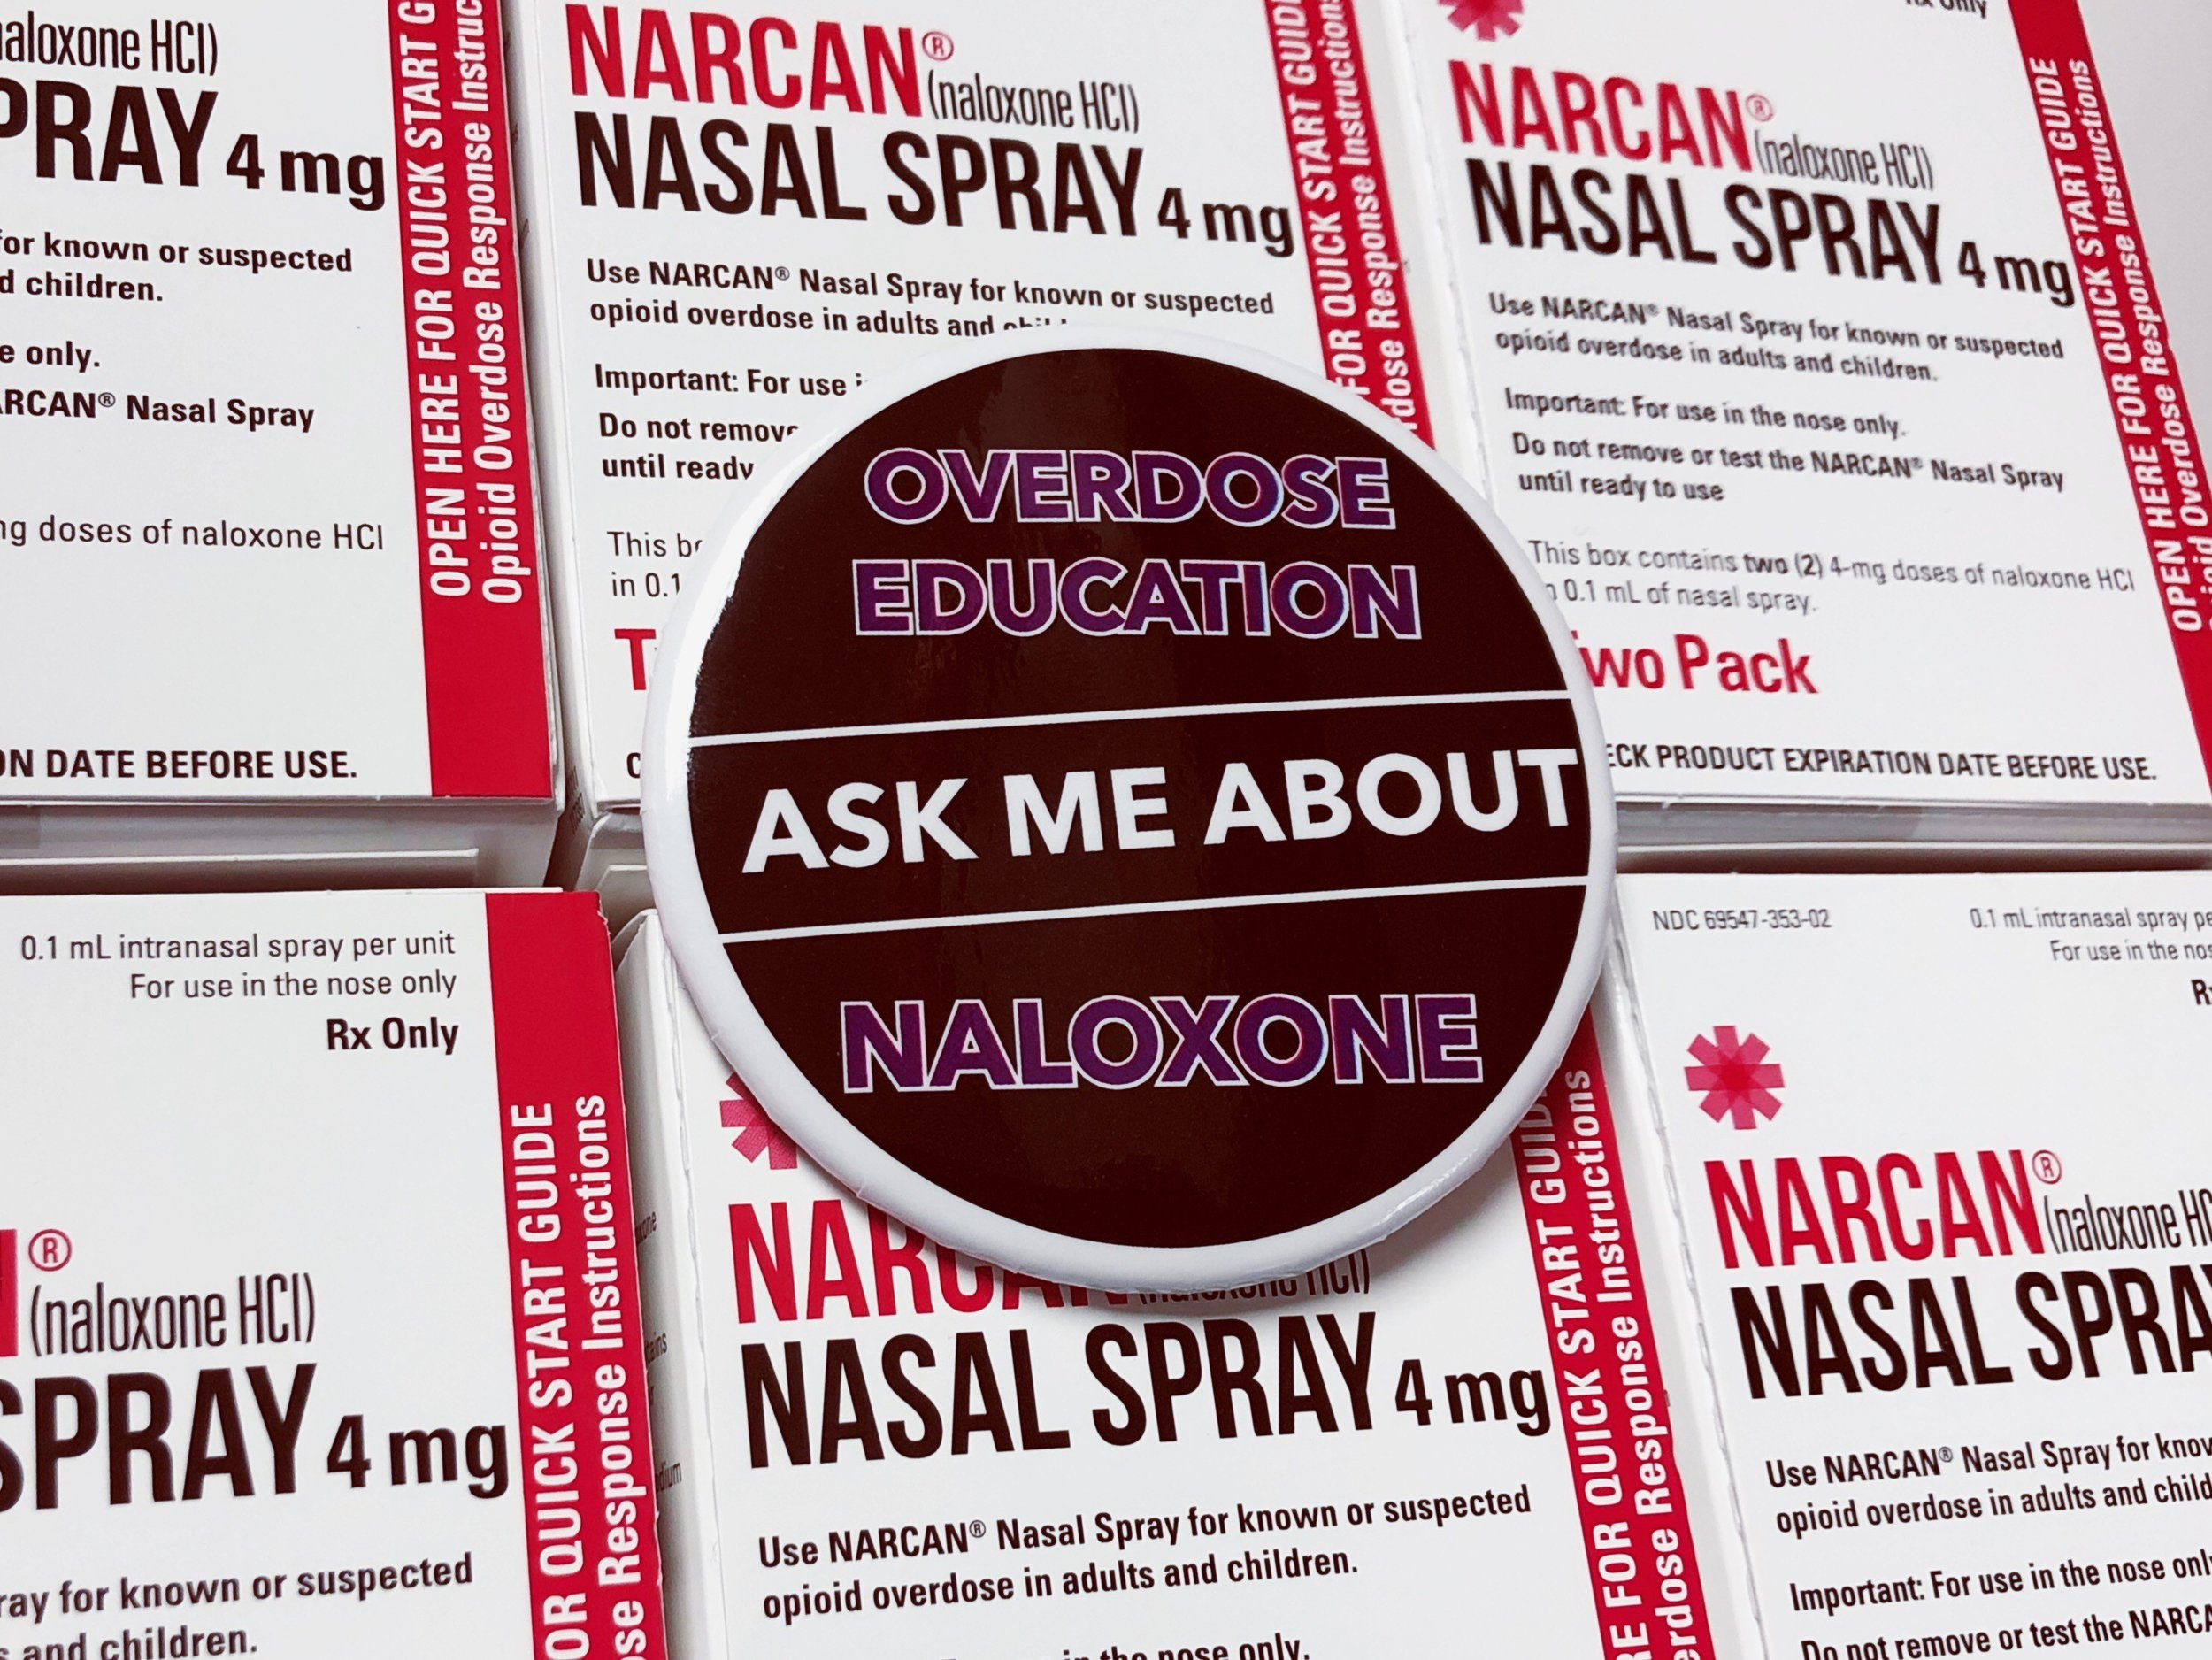 UMSL-MIMH's pharmacy-level initiatives to help get naloxone into the hands of Missouri residents